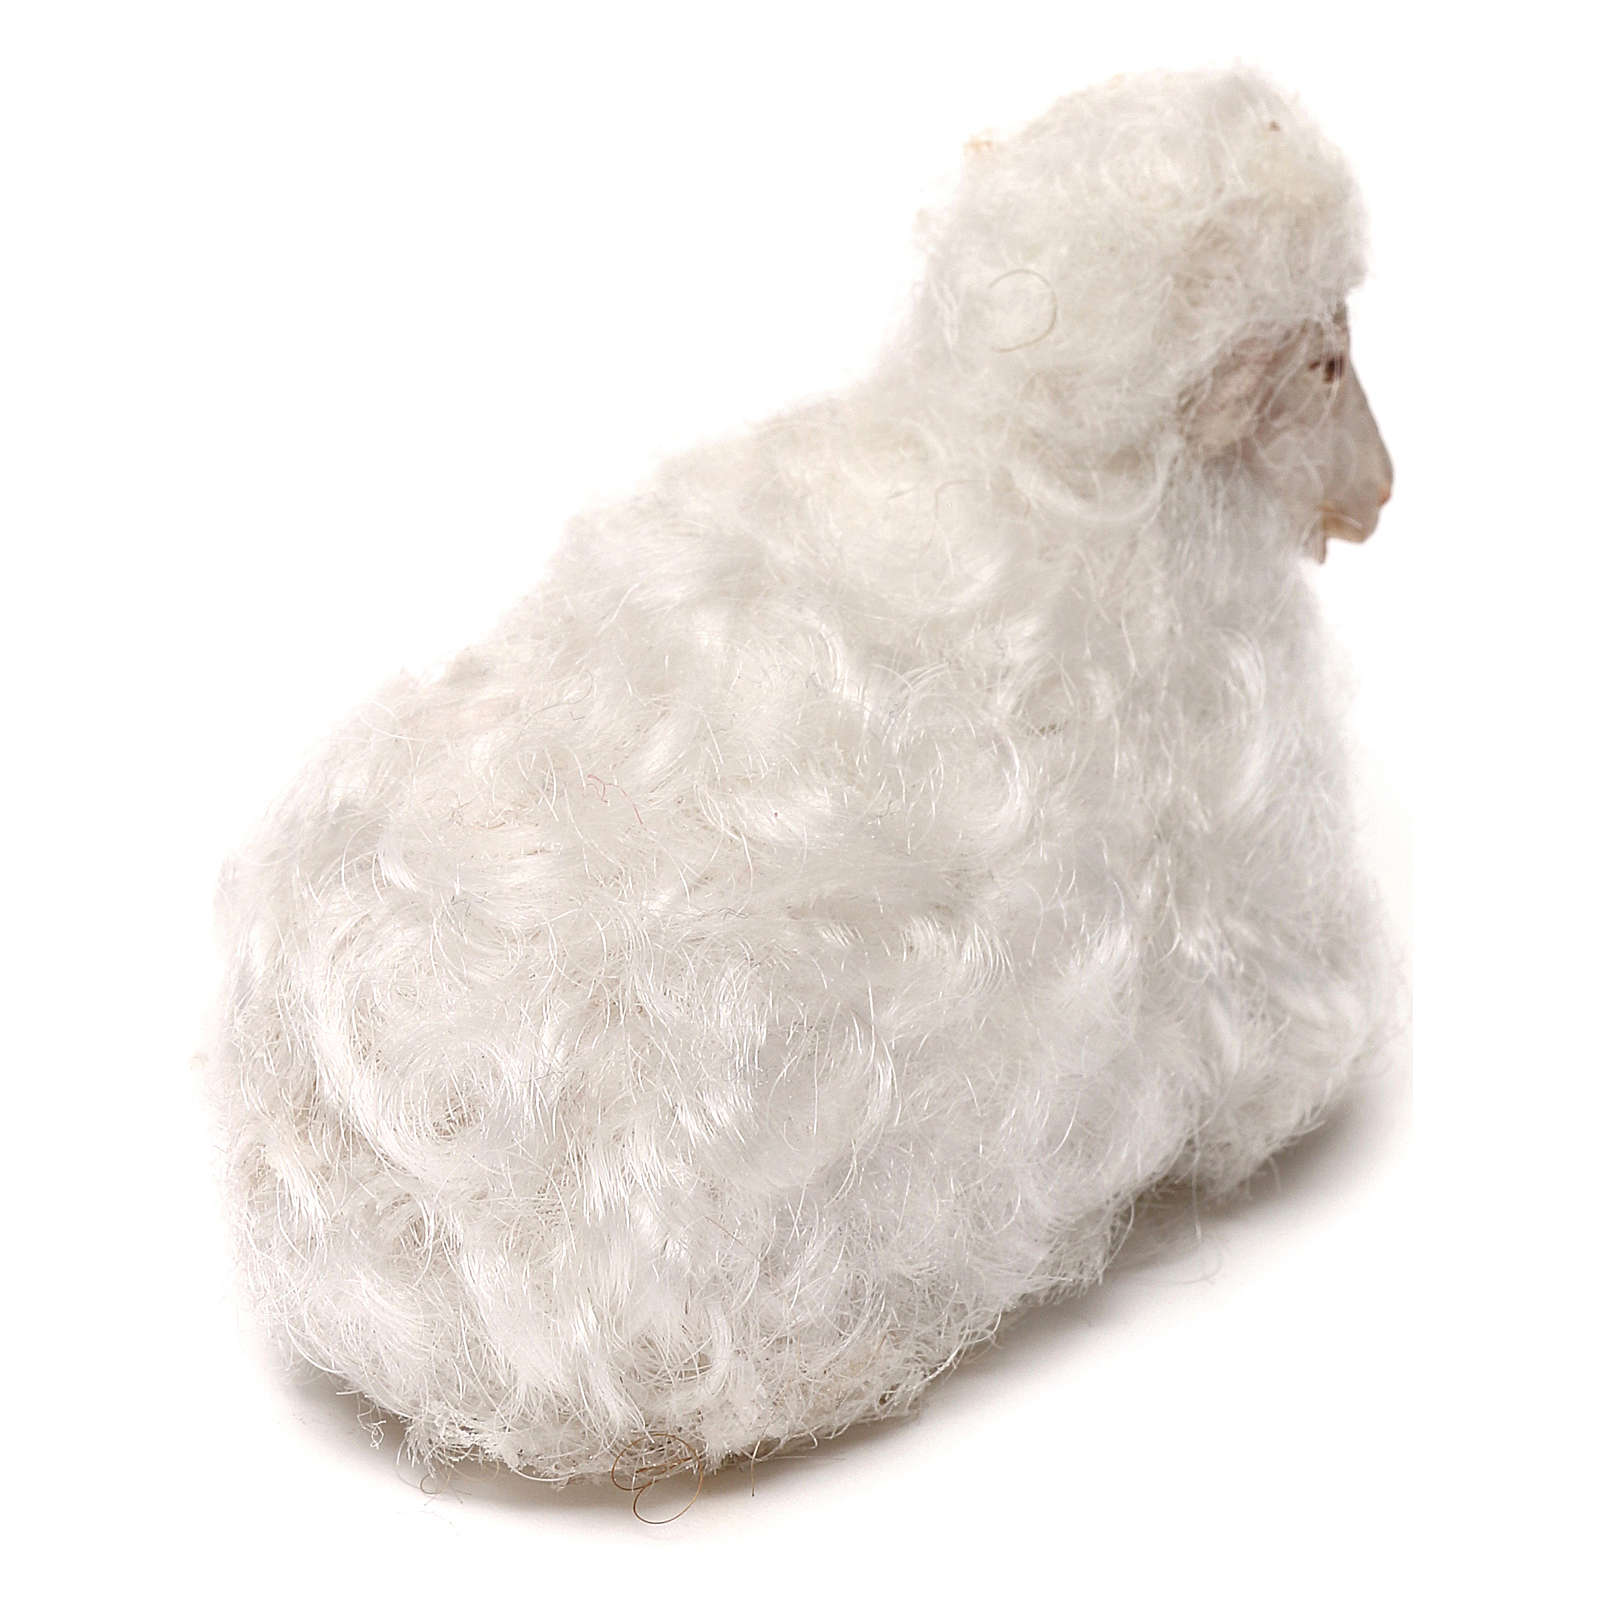 STOCK Sheep with white wool, Neapolitan Nativity scene 14 cm 4